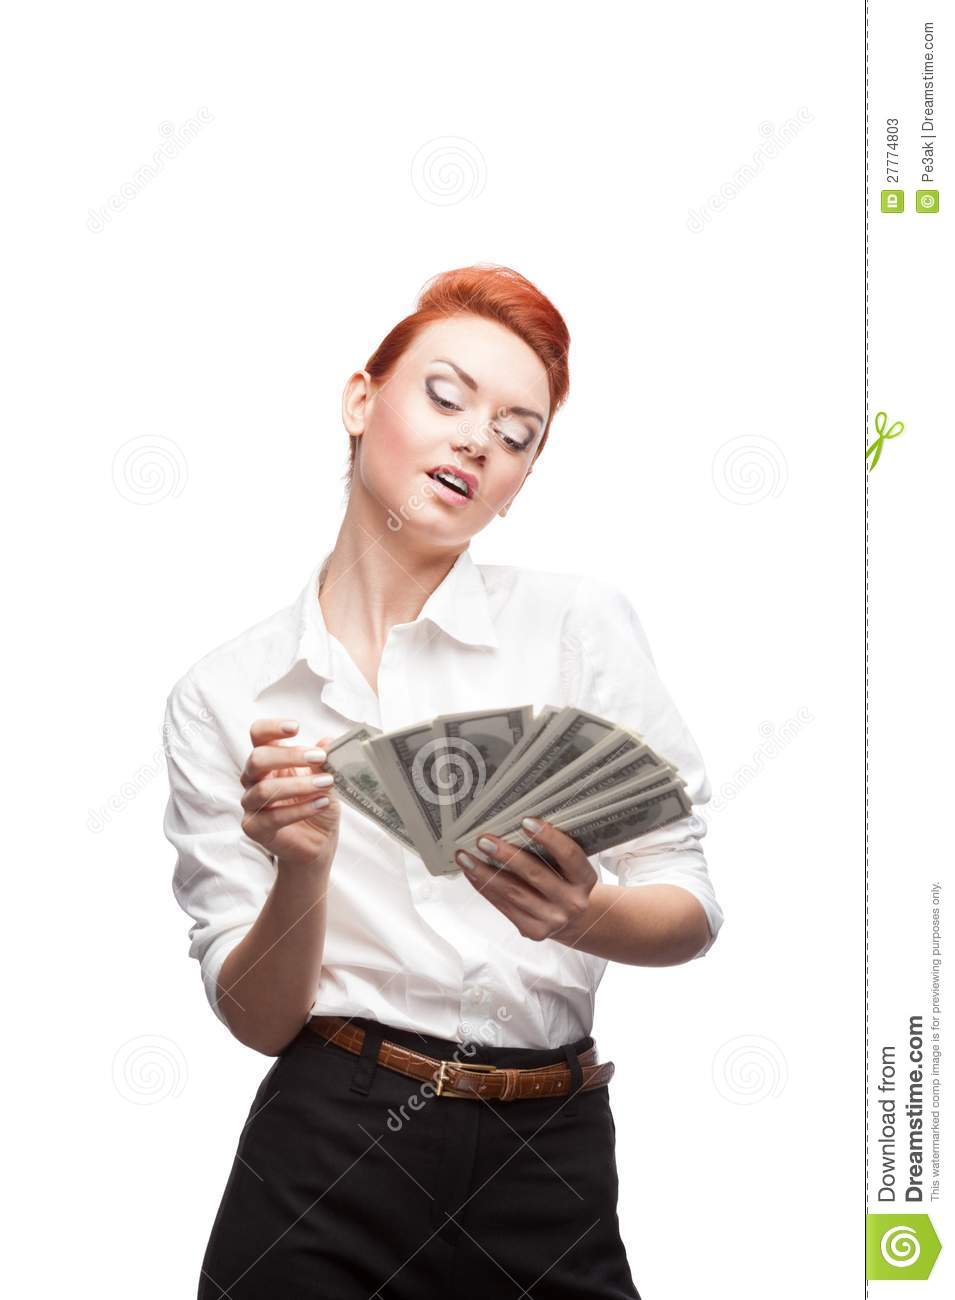 how to make money as an attractive female